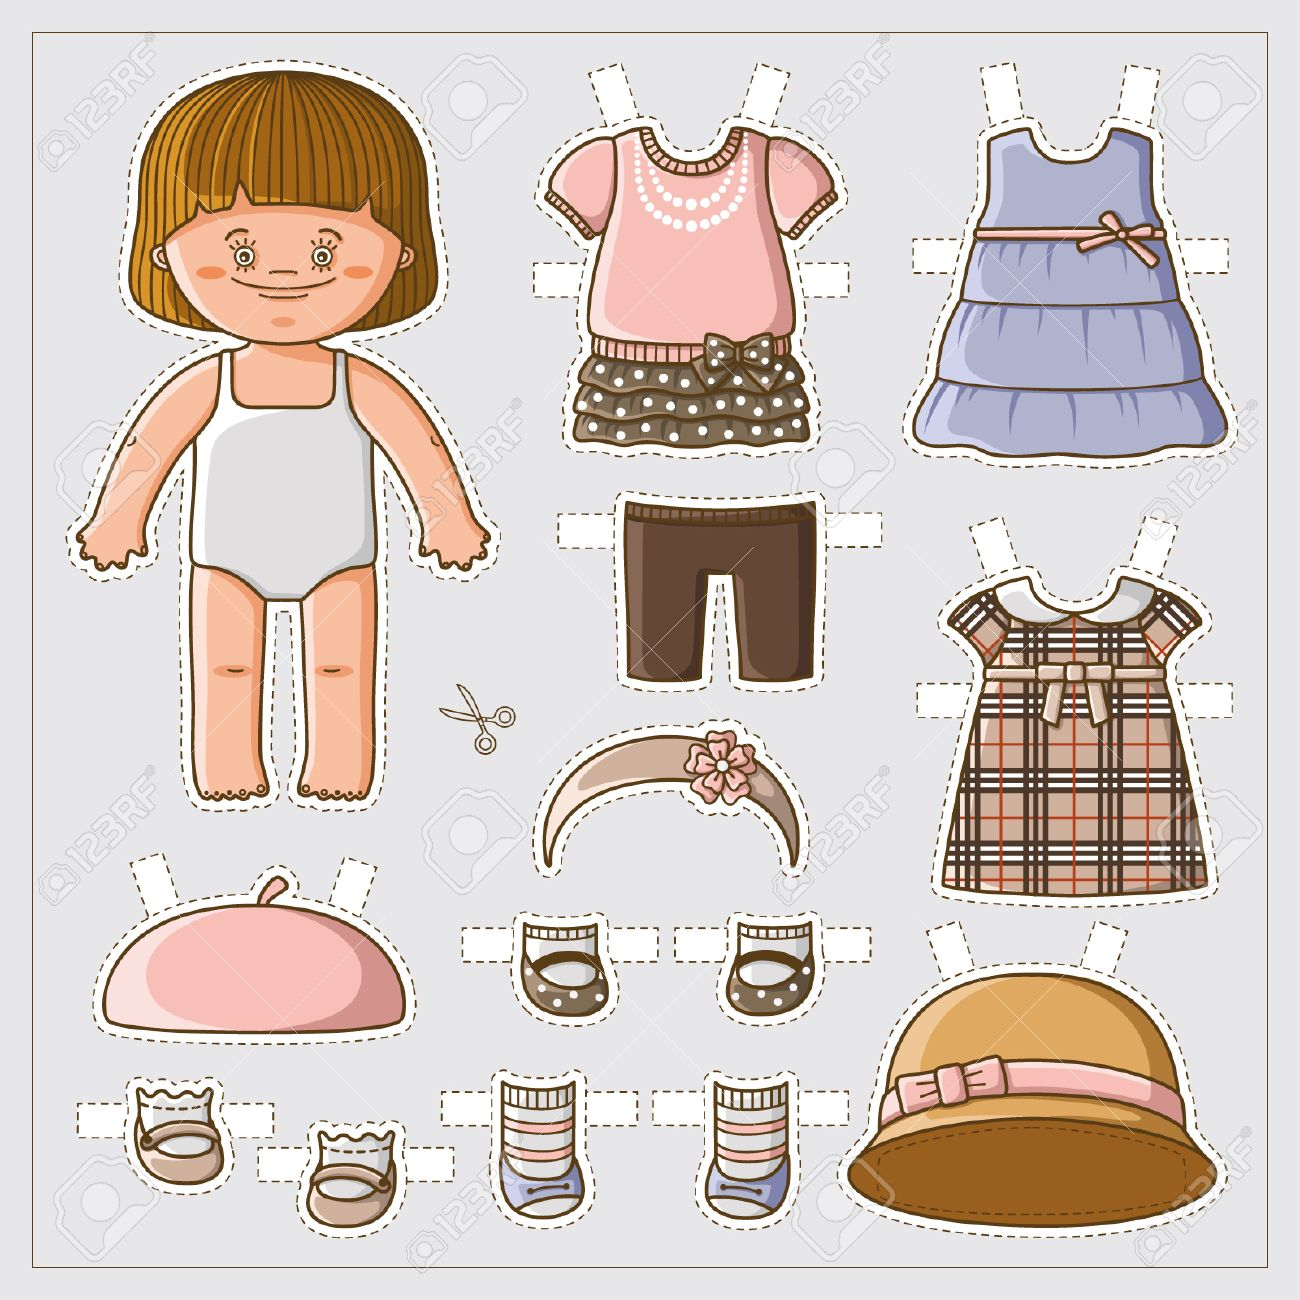 Dress Up Cute Paper Doll With Body Template Royalty Free Cliparts